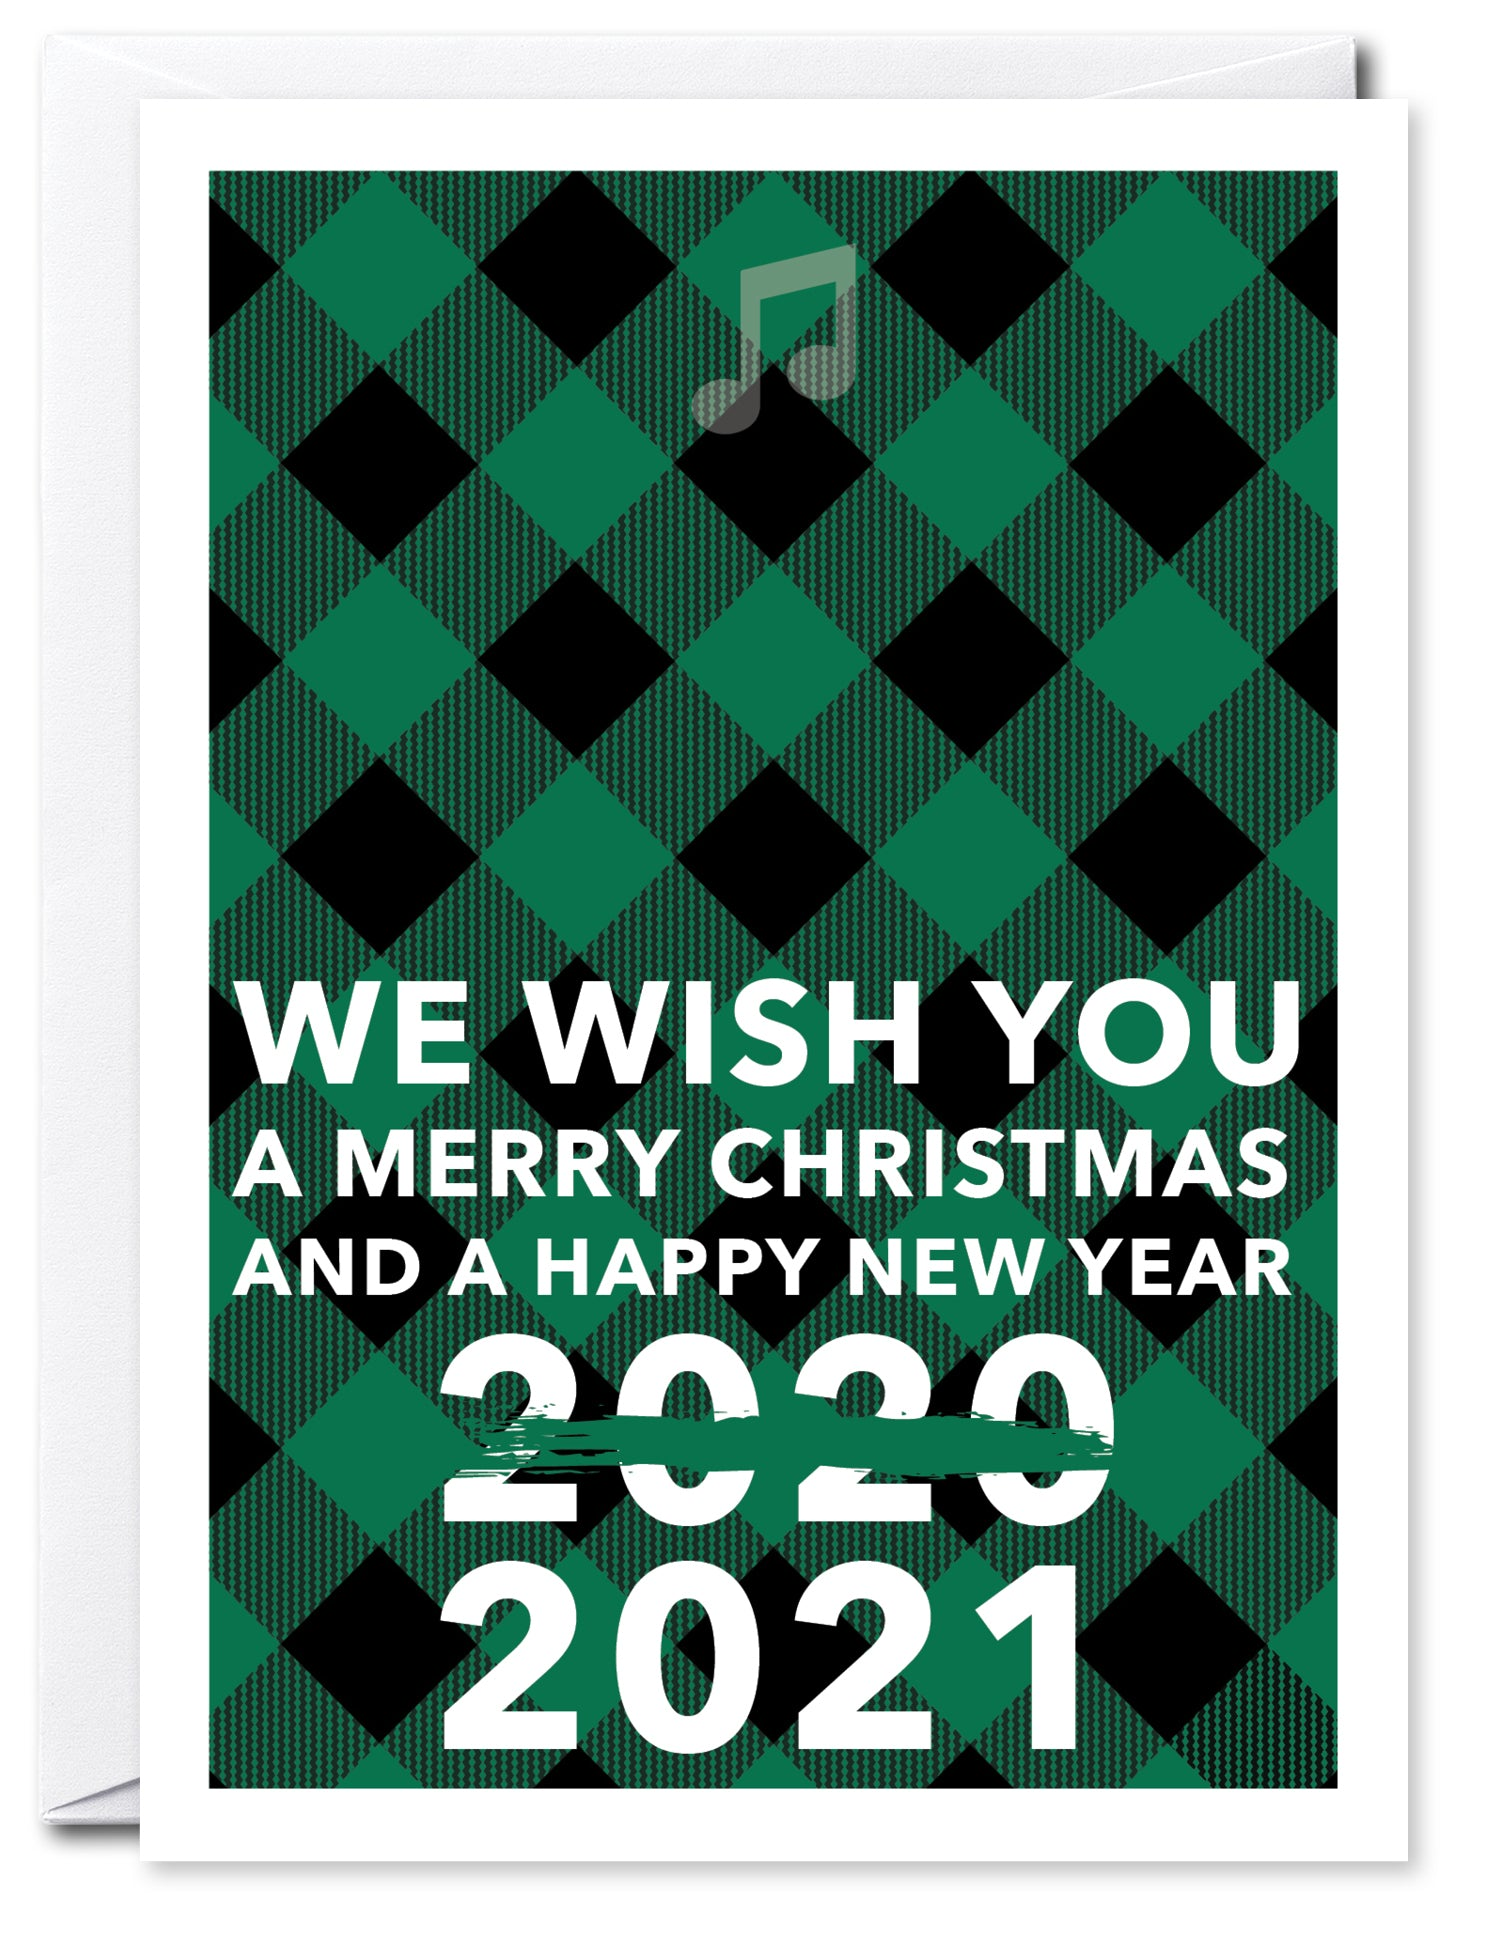 WE WISH YOU A MERRY CHRISTMAS AND A HAPPY 2021